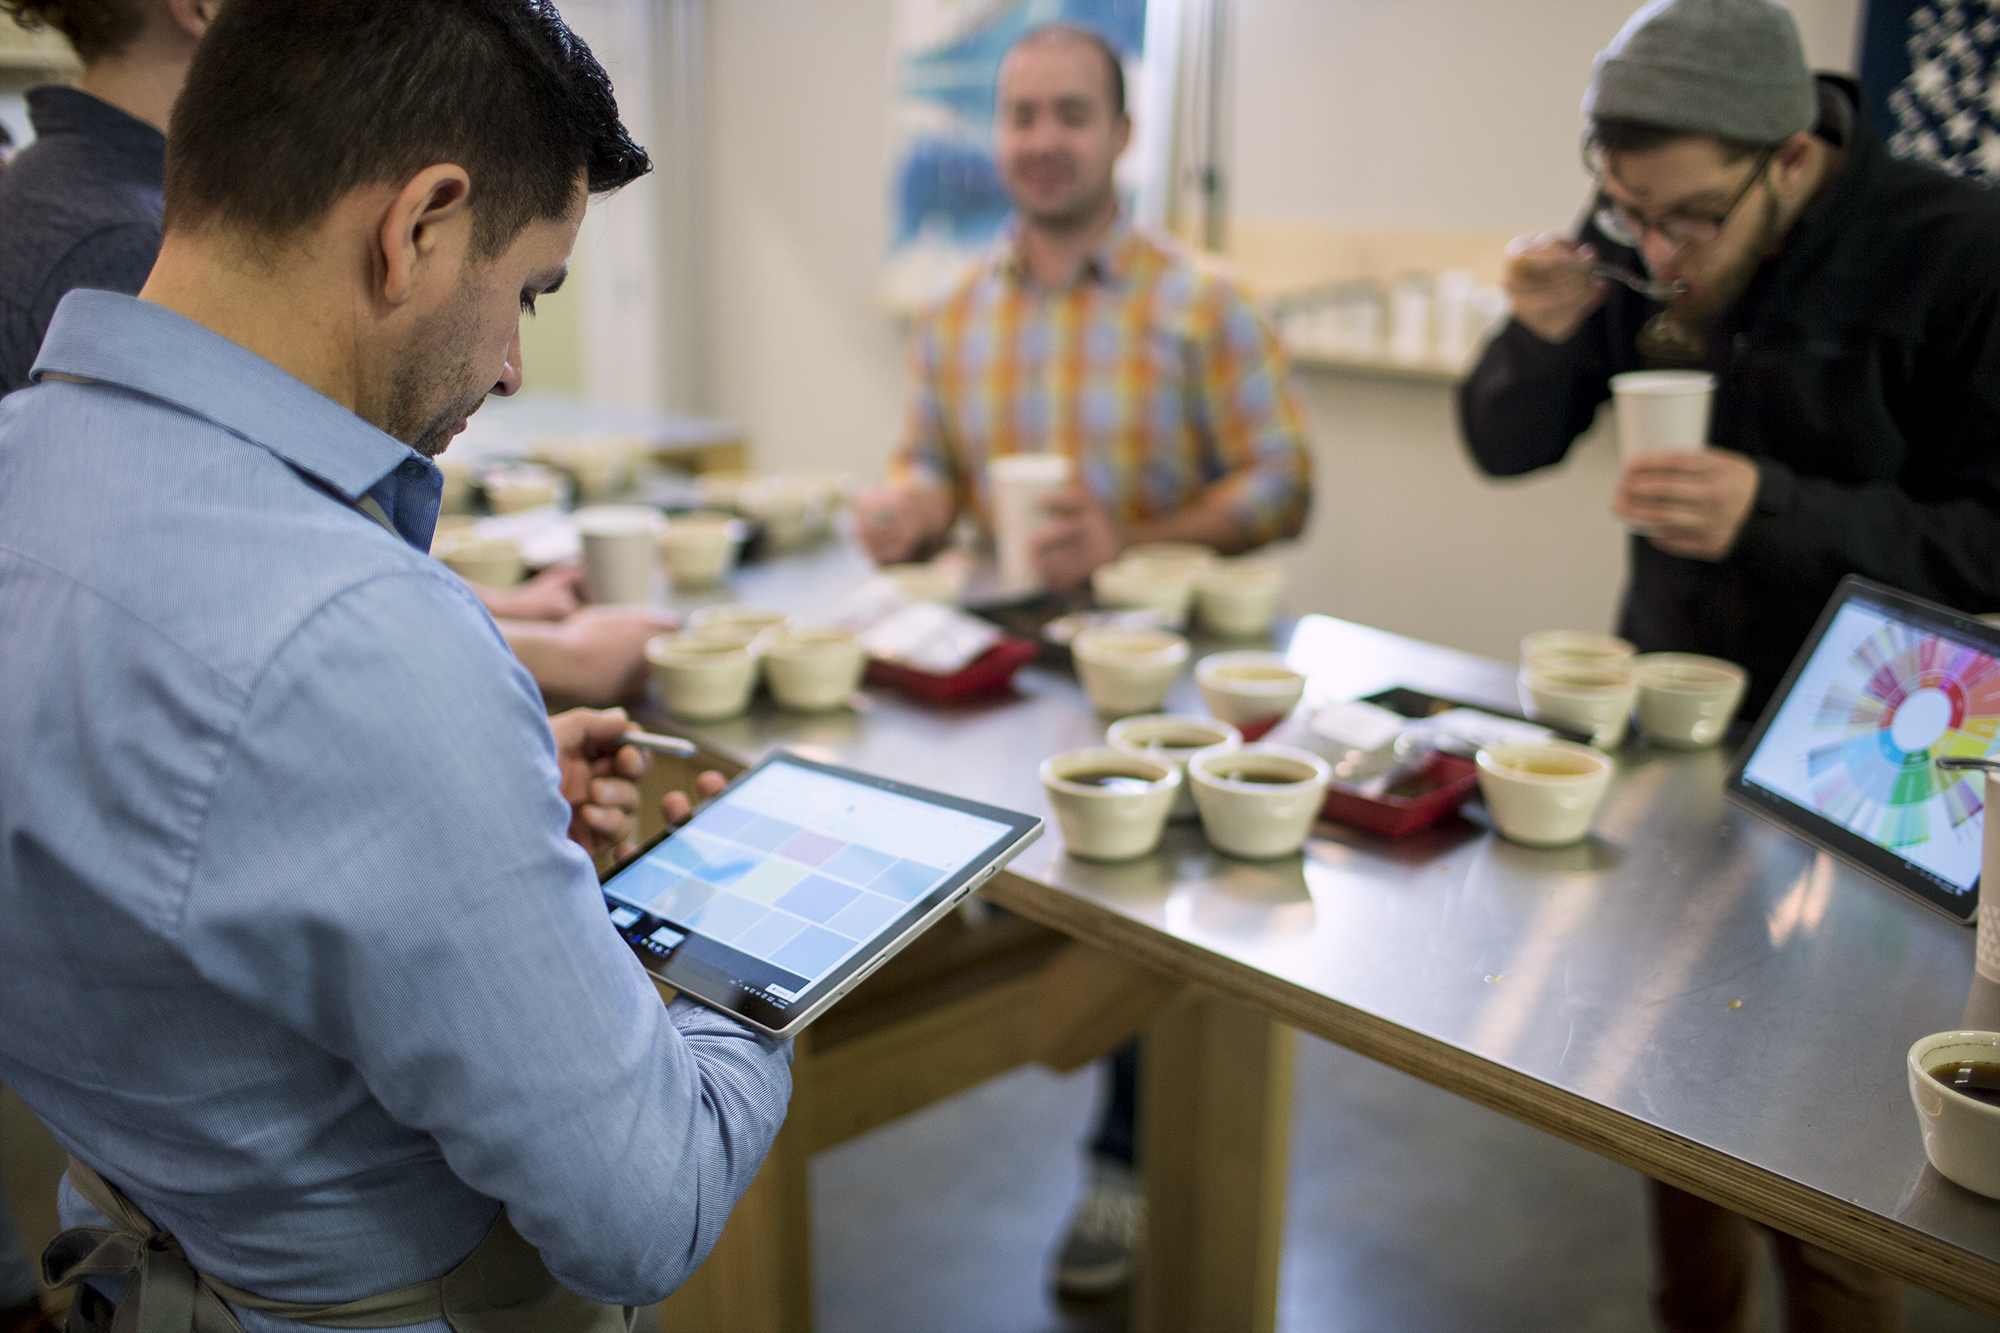 Customers tasting coffee while employee collects data from them